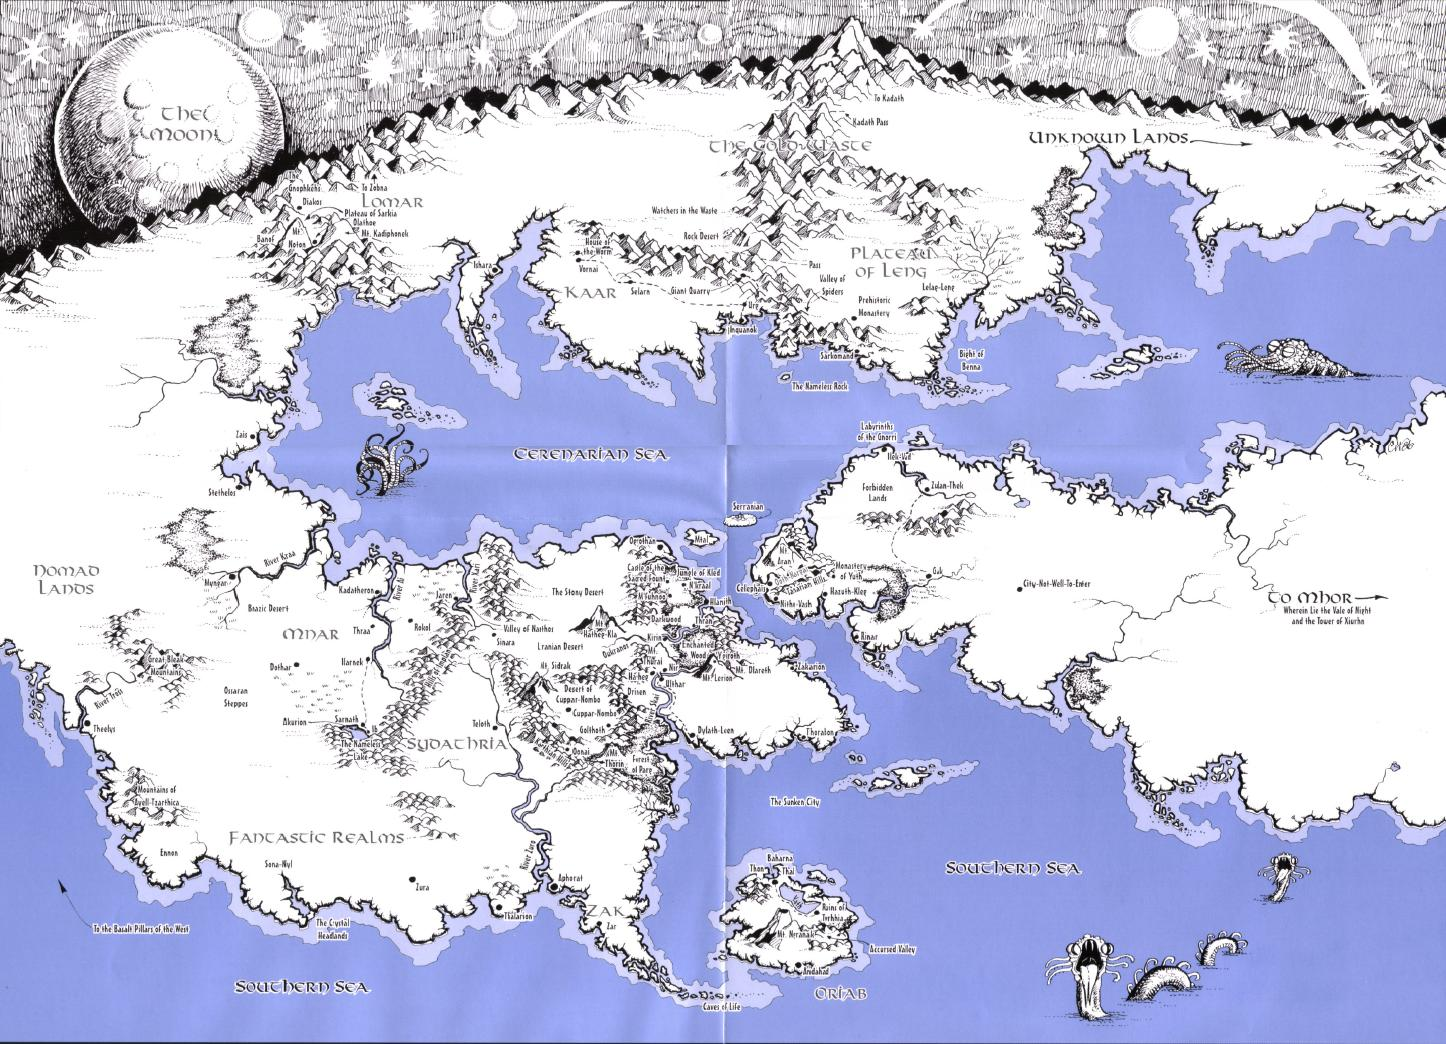 map of middle earth tolkien with hp lovecraft dreamland map 85492041 on 439116 middle earth a